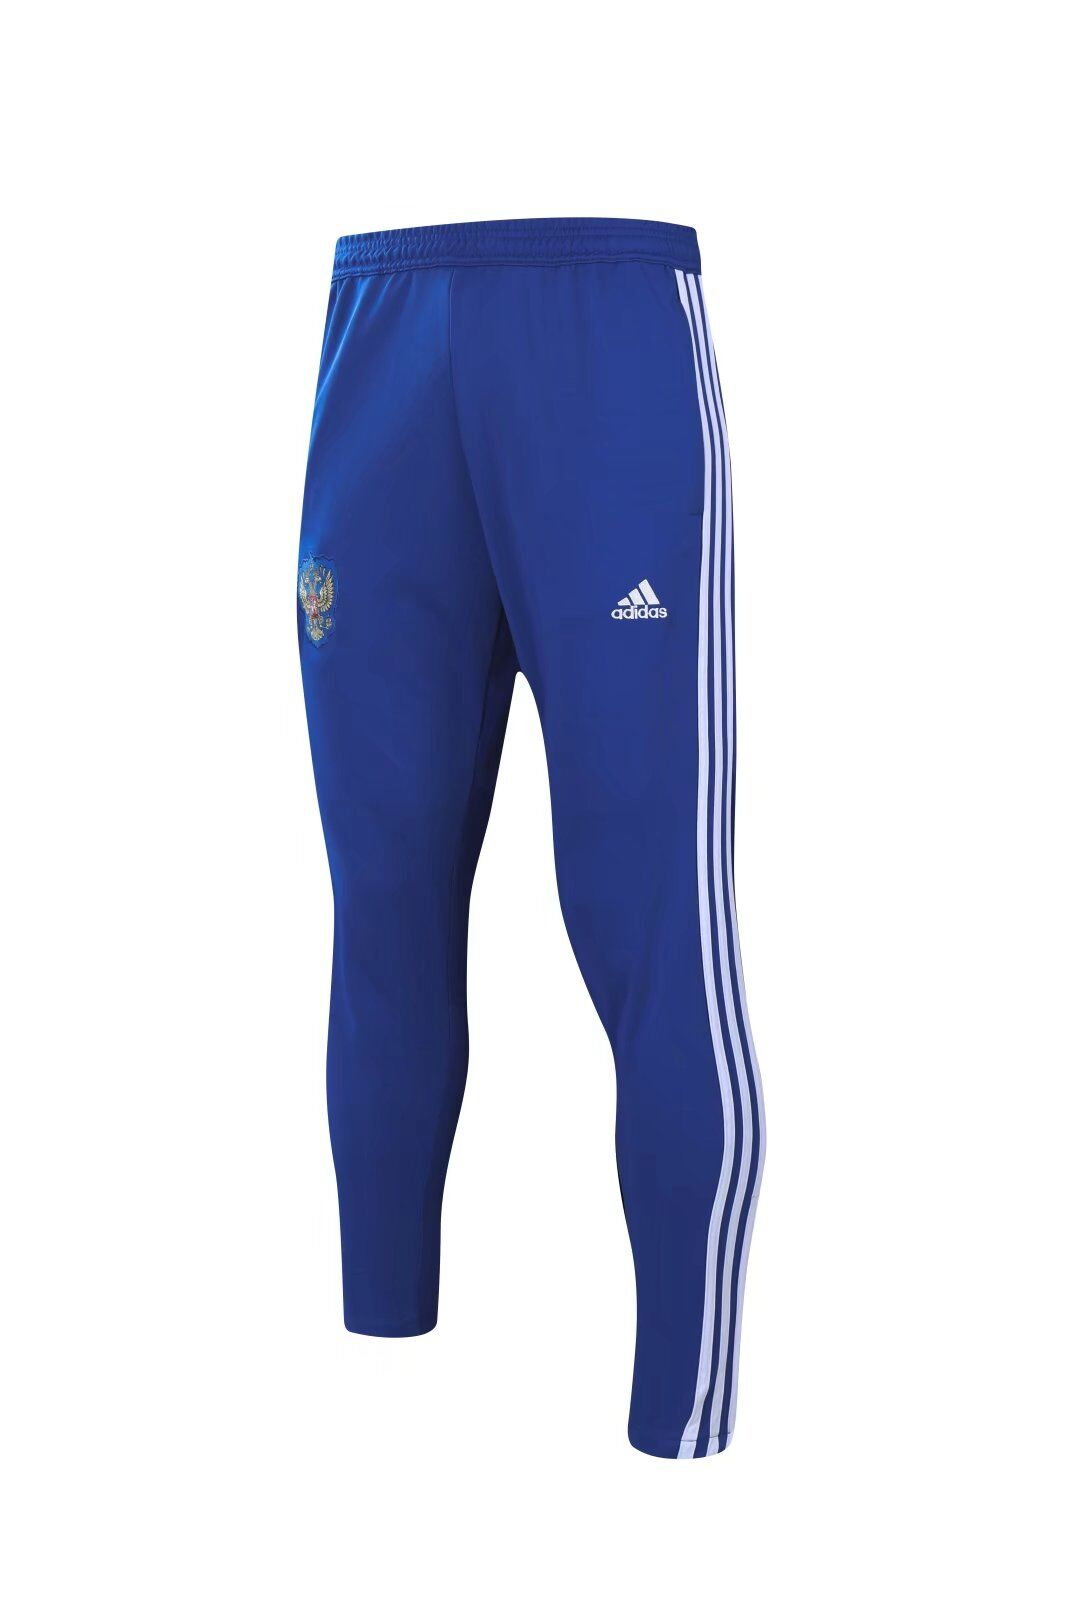 Russia Training Sports Pants Blue With White Stripe World Cup 2018